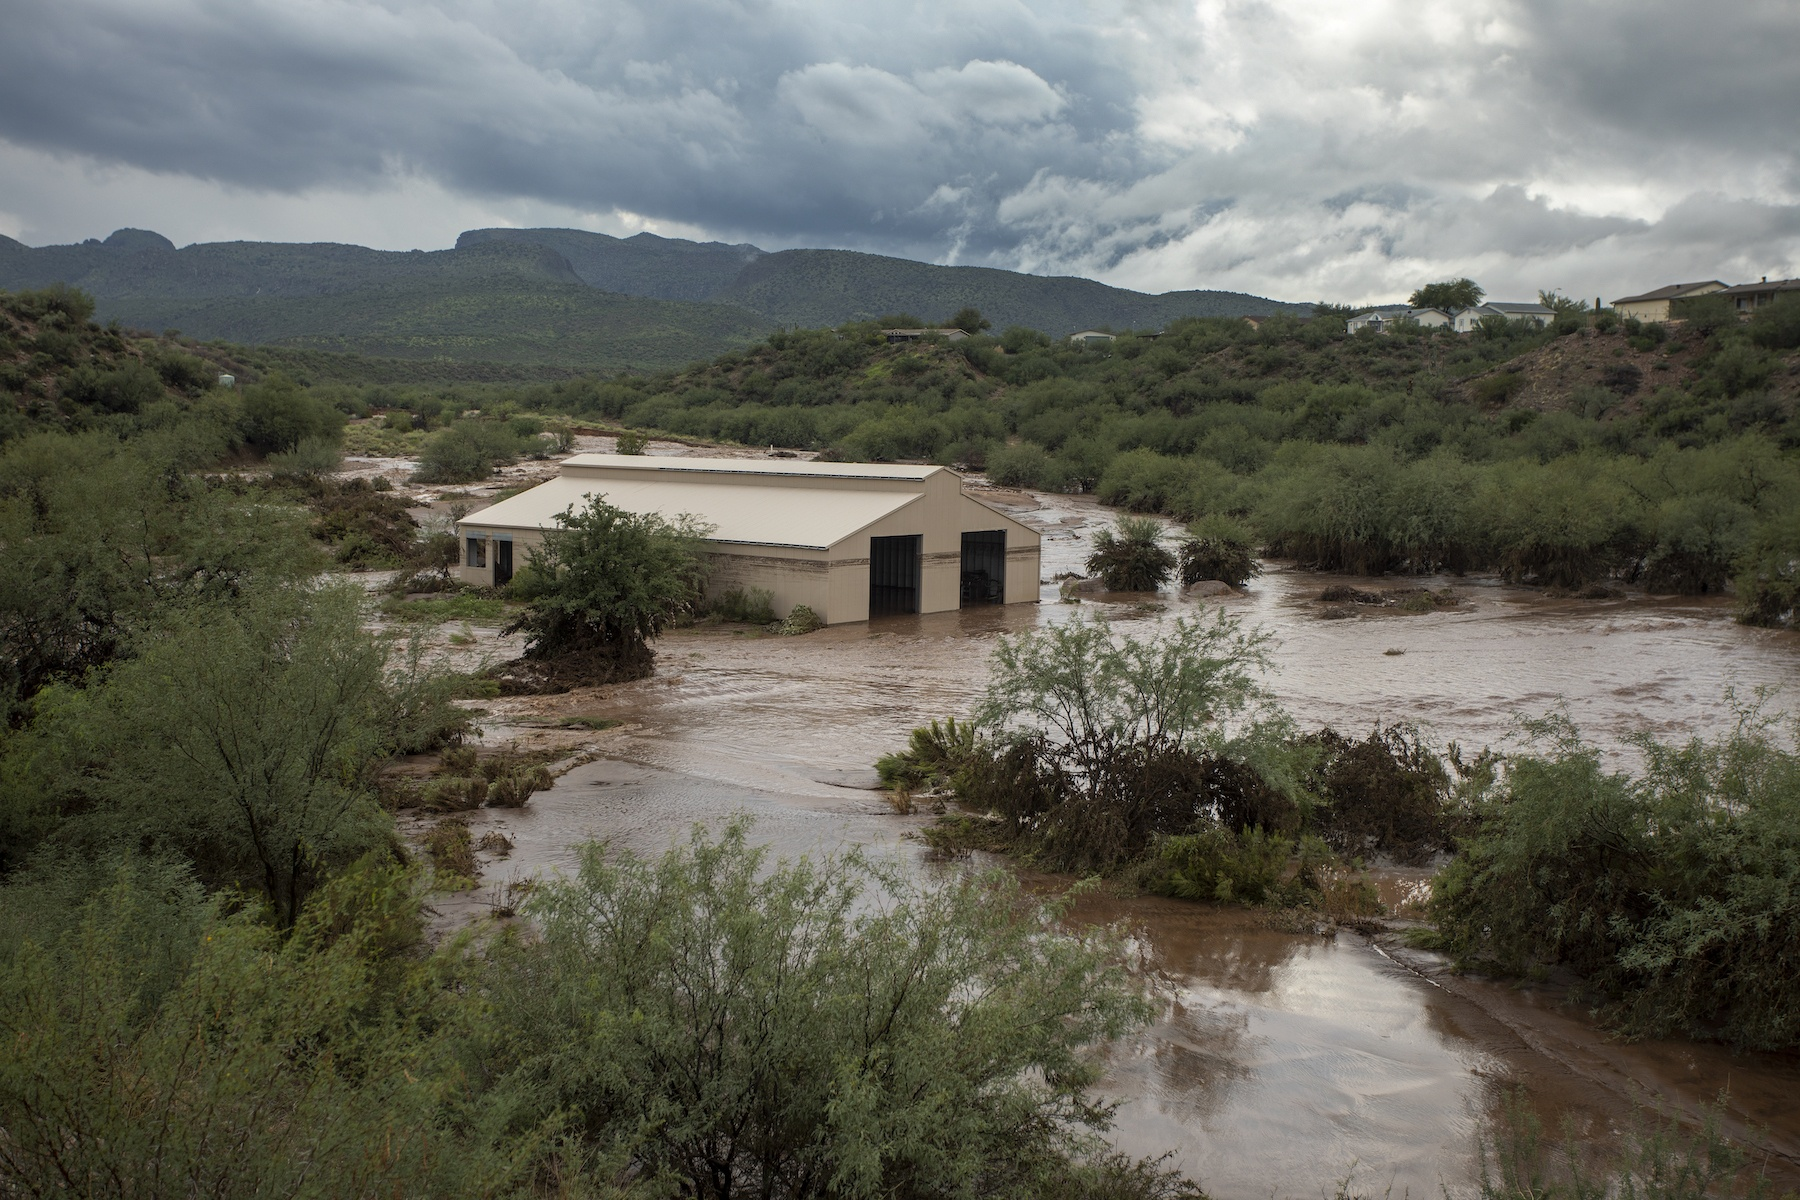 A ranch hit by a flash flood from a monsoon rainstorm, which was made worse by the quick runoff from the denuded landscape of the burn scar of a major wildfire upslope, is seen on August 18, 2021 in Roosevelt, Arizona.